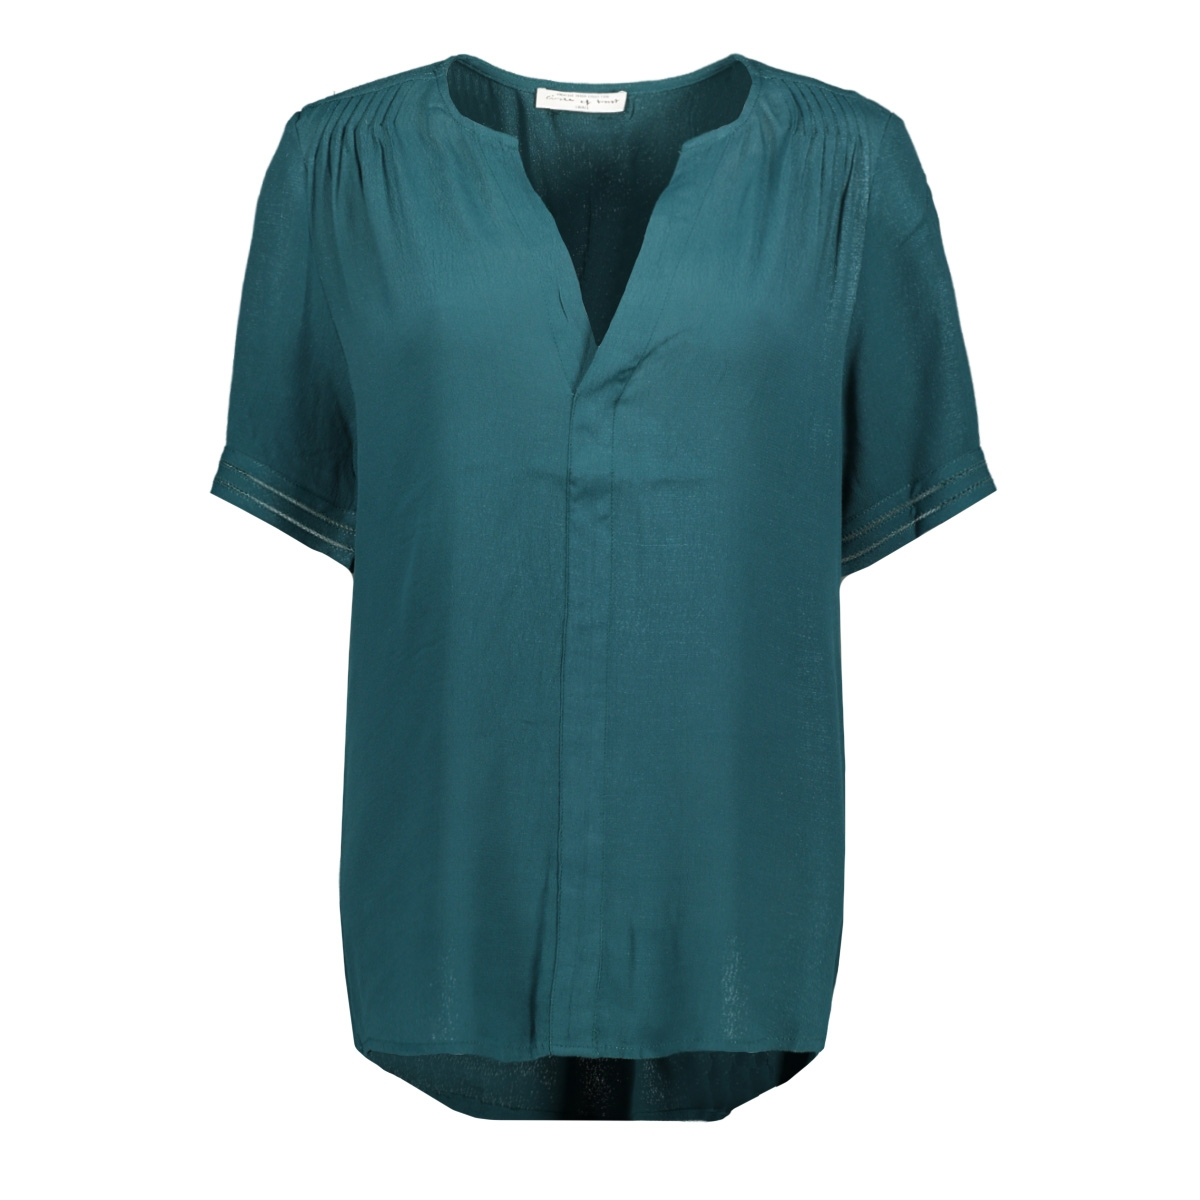 cristy blouse s20 65 7191 circle of trust blouse deep teal